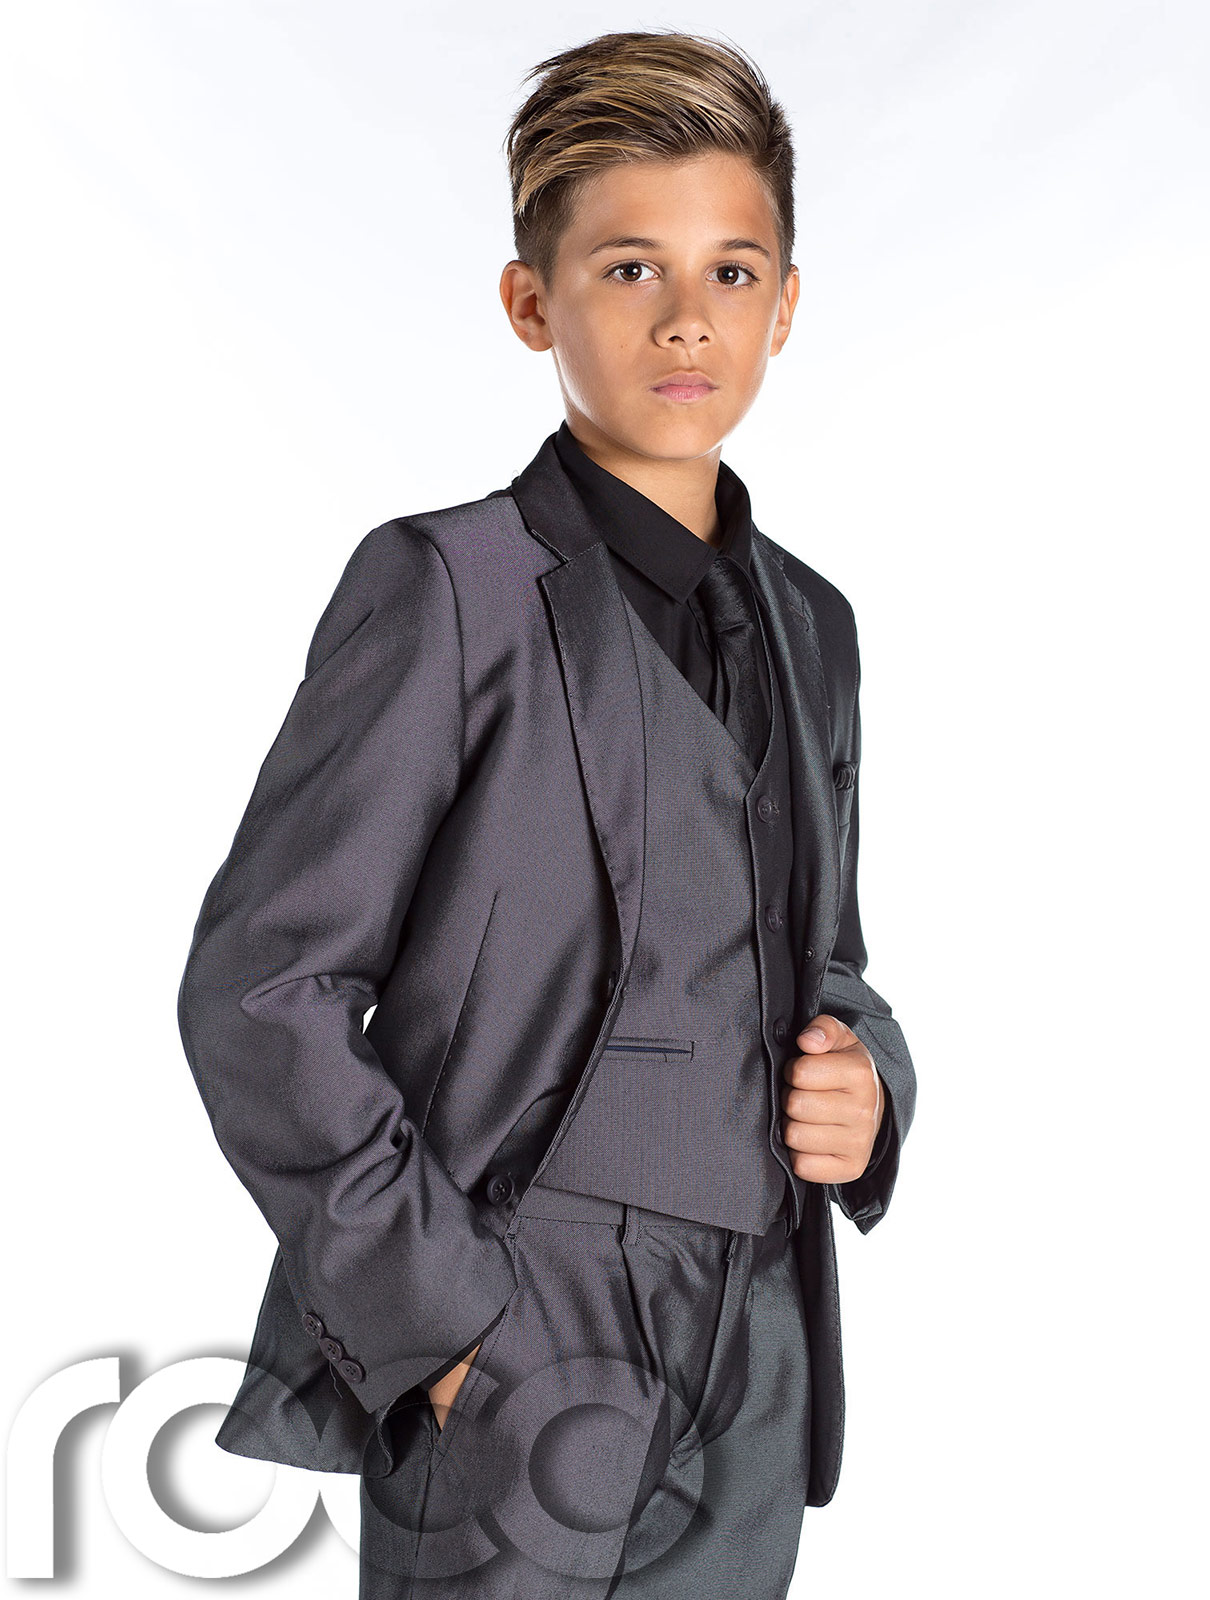 Kmart has the best selection of Boys' Suits & Dresswear in stock. Get the Boys' Suits & Dresswear you want from the brands you love today at Kmart.